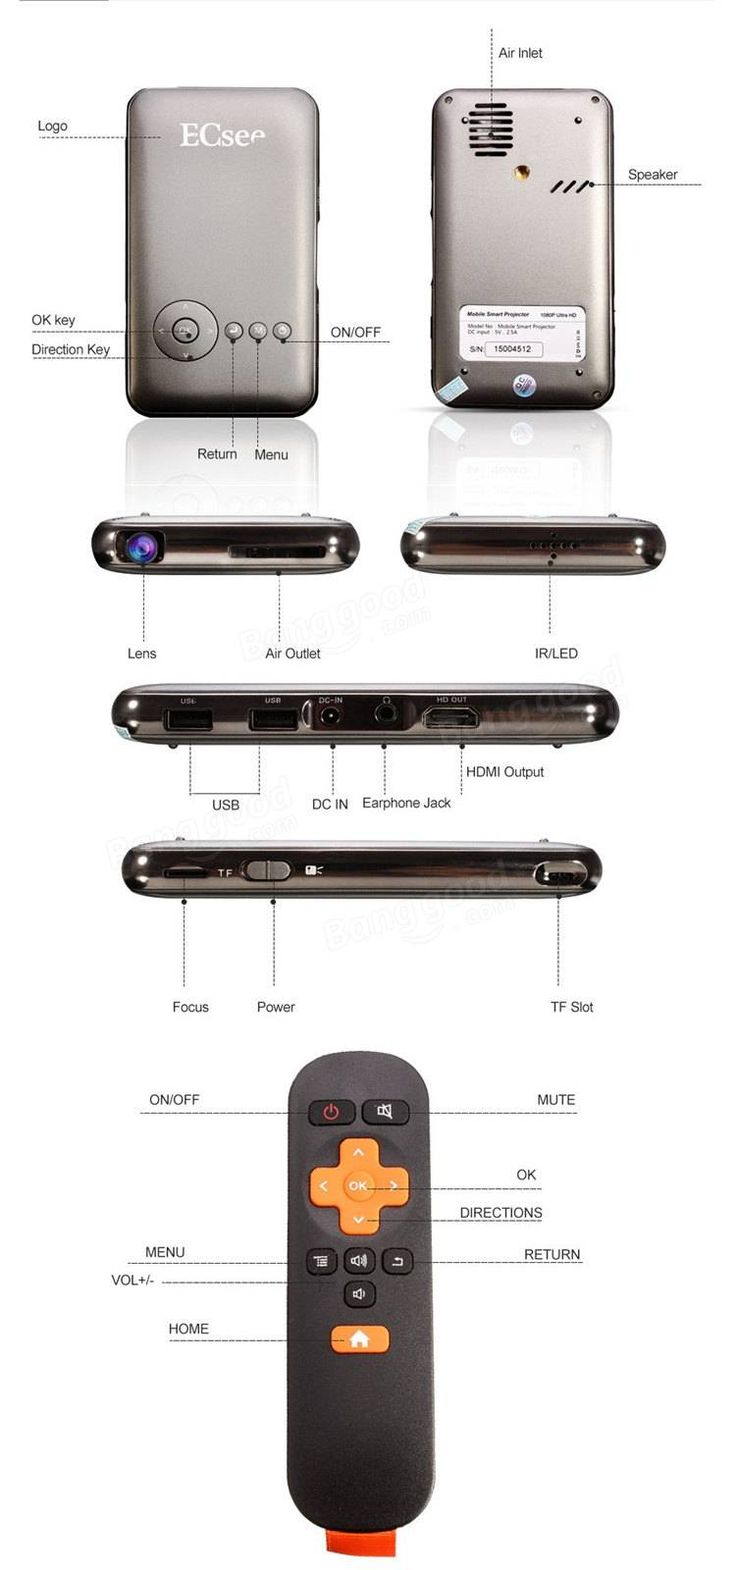 With my interest piqued by the new Doogee P1 Android Projector I'm now considering this ECsee M6, with similar capabilities but a claimed brightness that compares to my current dumb Optoma pico-projector and from a company with a bit more experience in this space. $179 seems reasonable